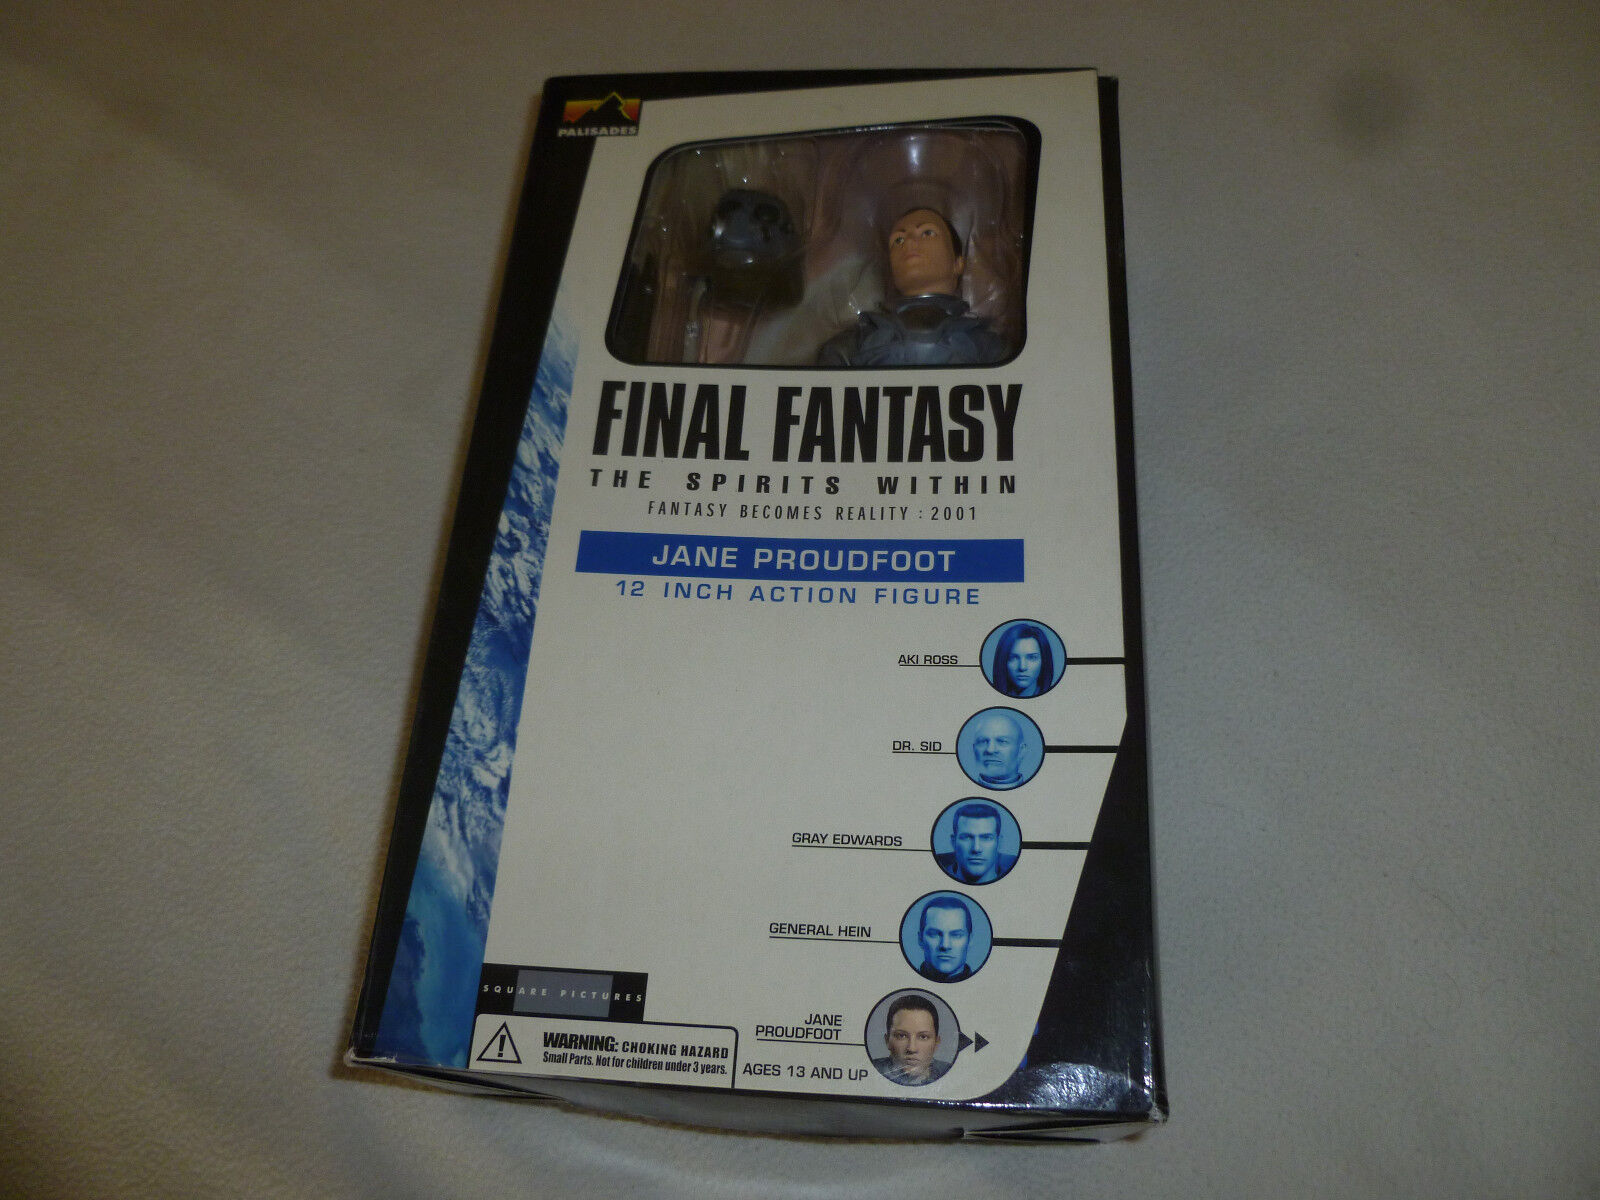 NEW IN BOX FINAL FANTASY THE SPIRITS WITHIN JANE PROUDFOOT 12